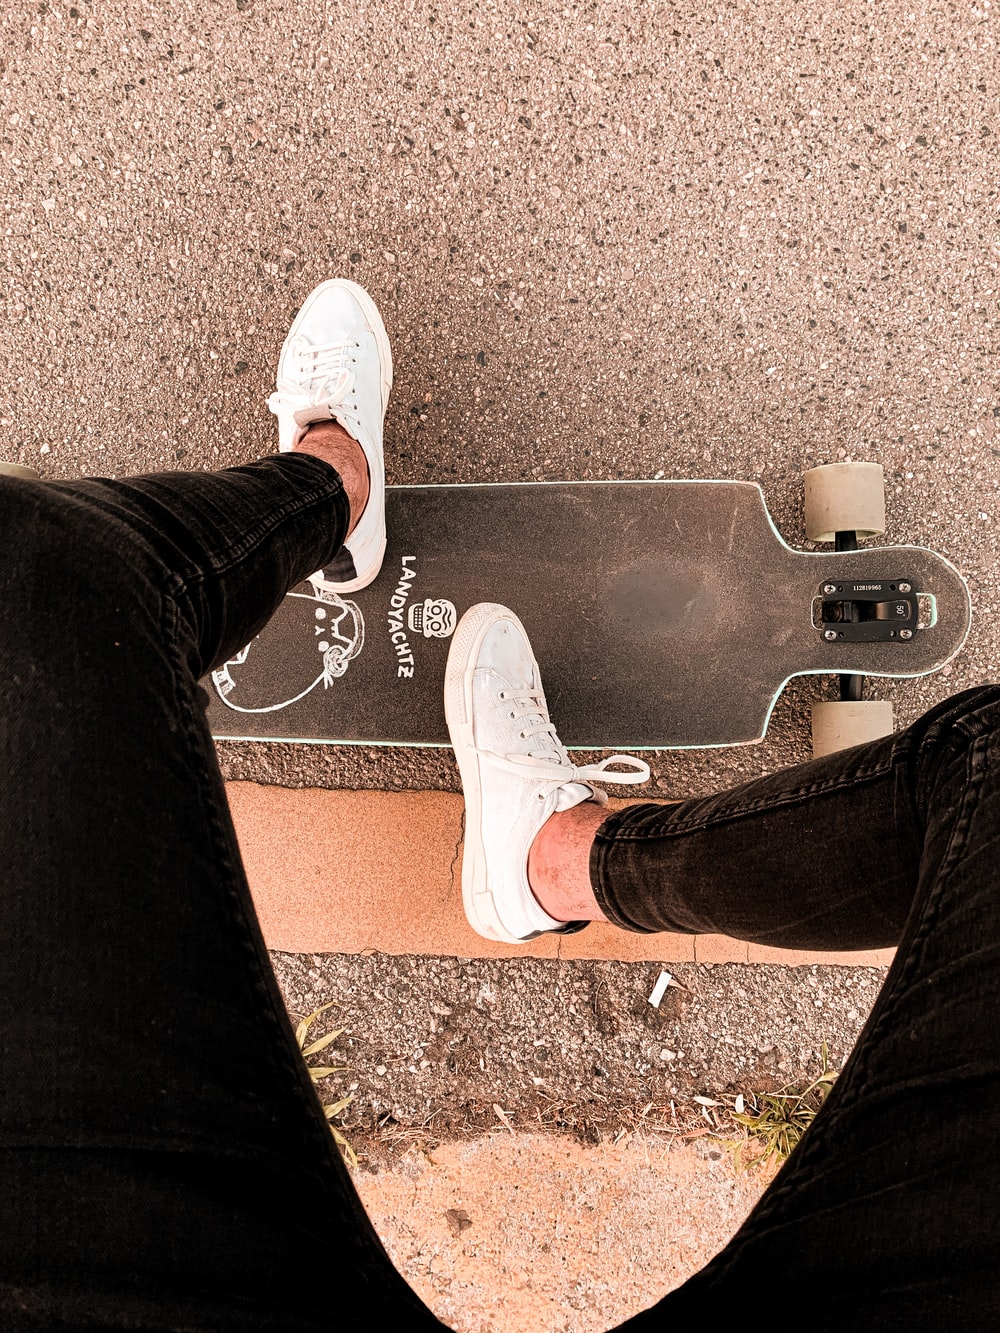 person in black pants and white sneakers